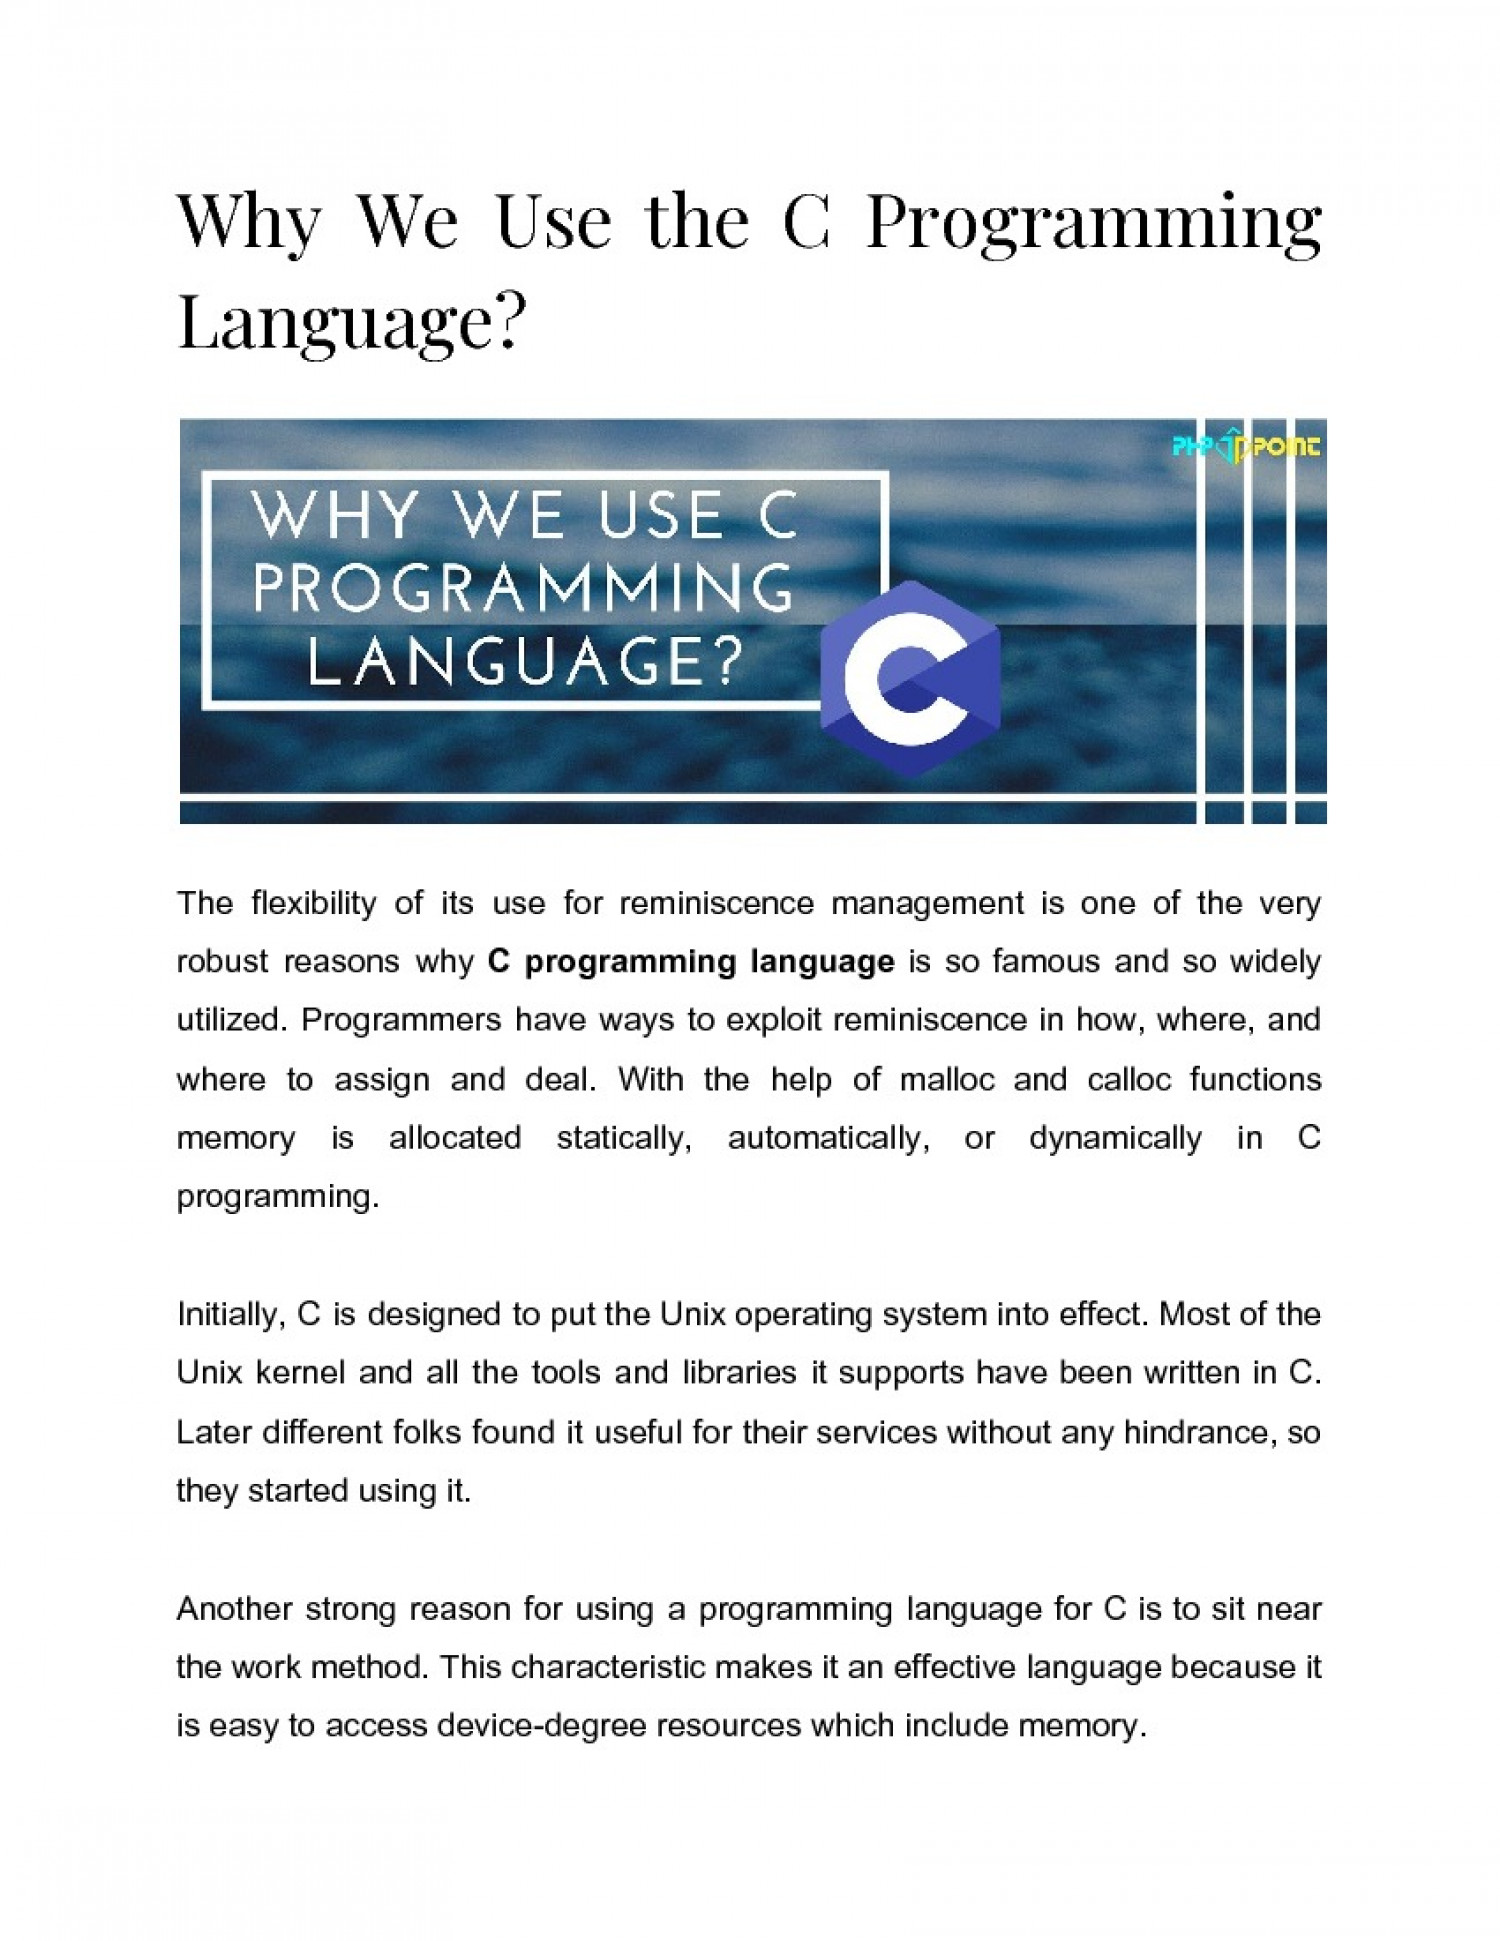 Why We Use The C Programming Language? Infographic